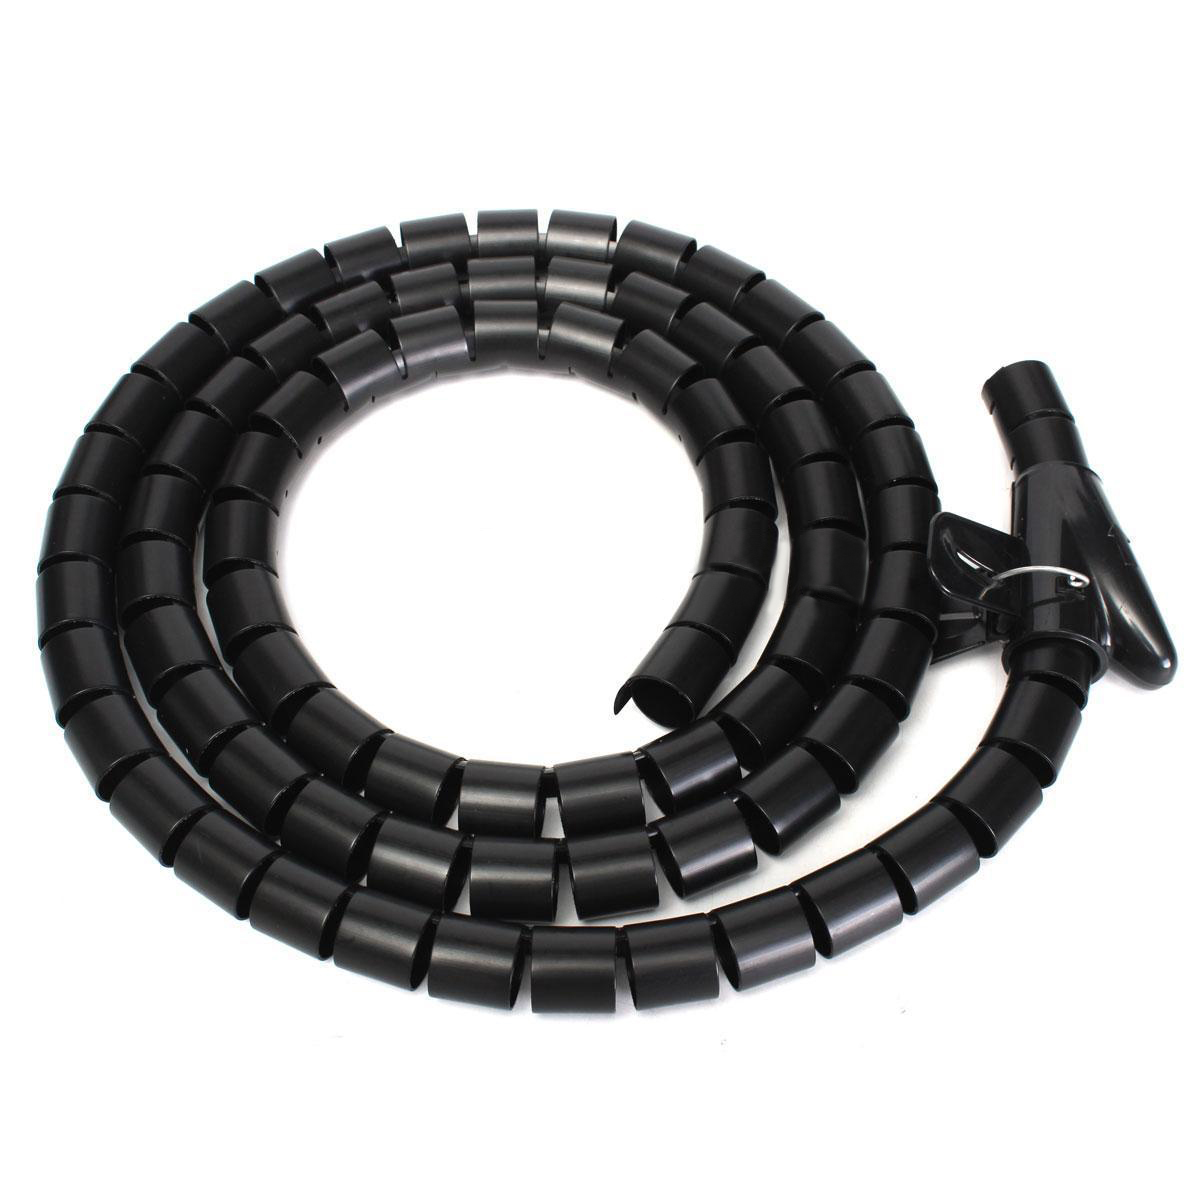 Buy cable loom spiral and get free shipping on AliExpress.com